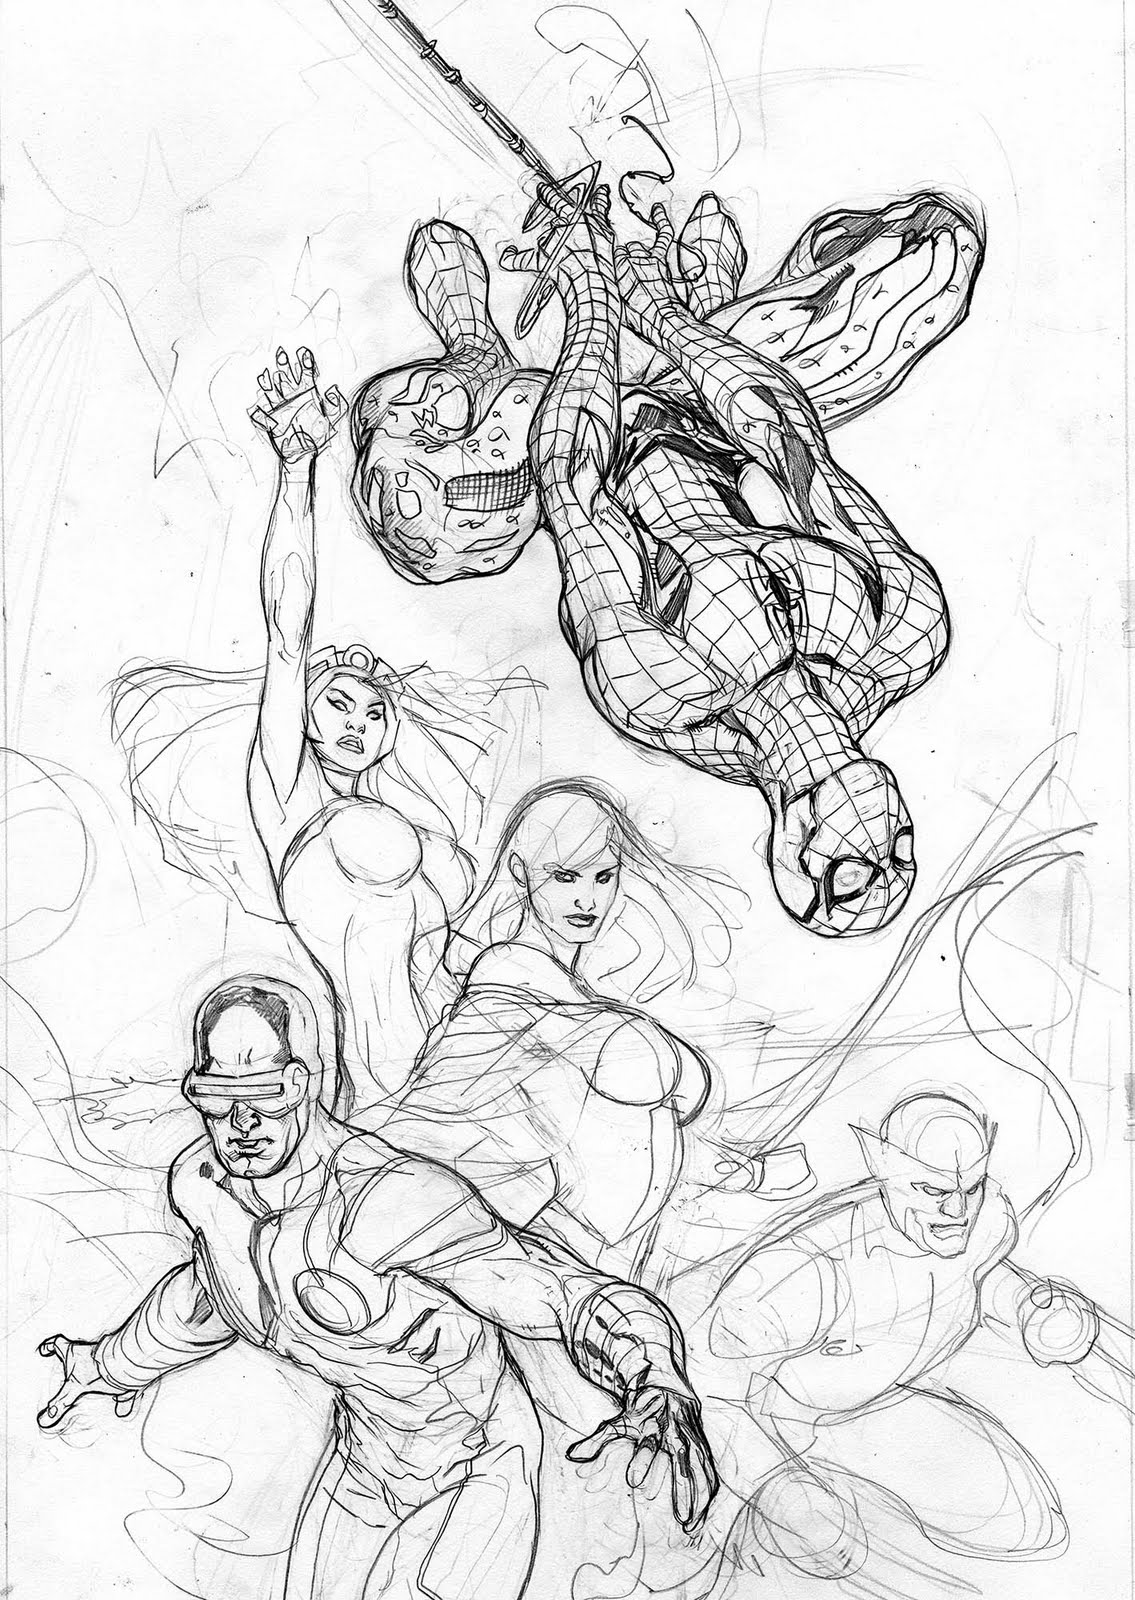 The Bombshellter: X-Men #7 Cover Step By Step 1